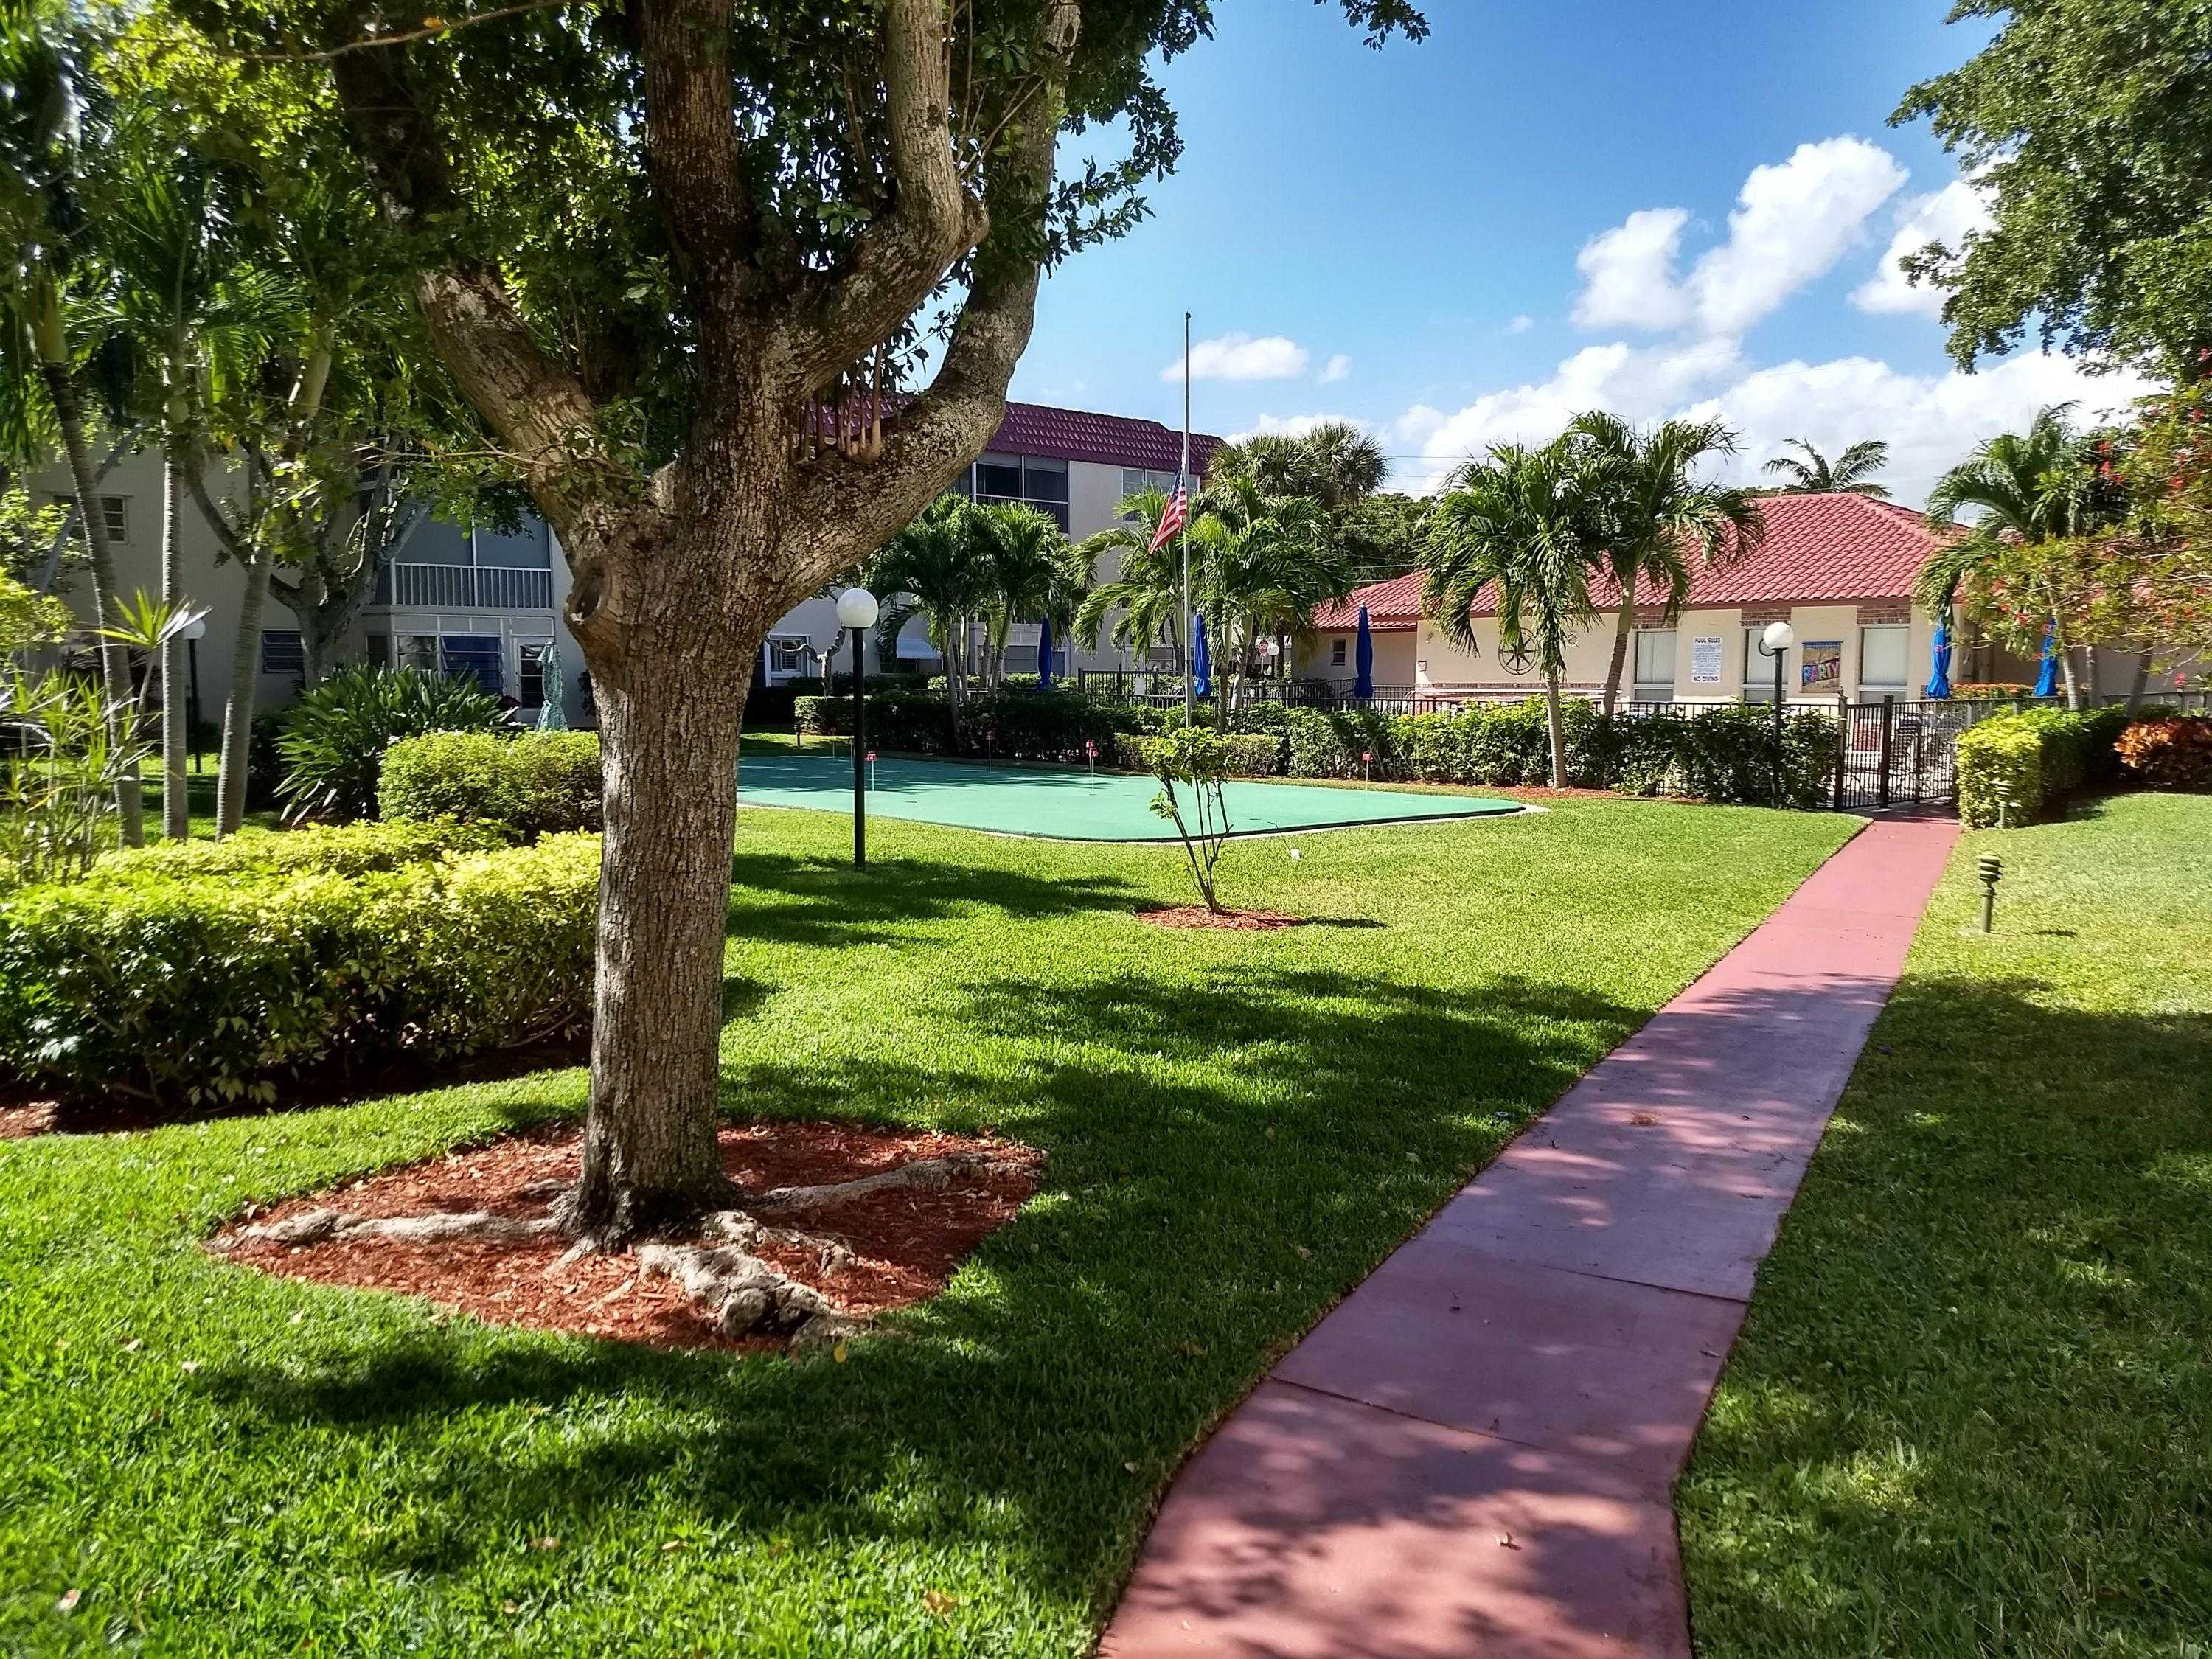 Homes for Sale in Deerfield Beach - Property Matters